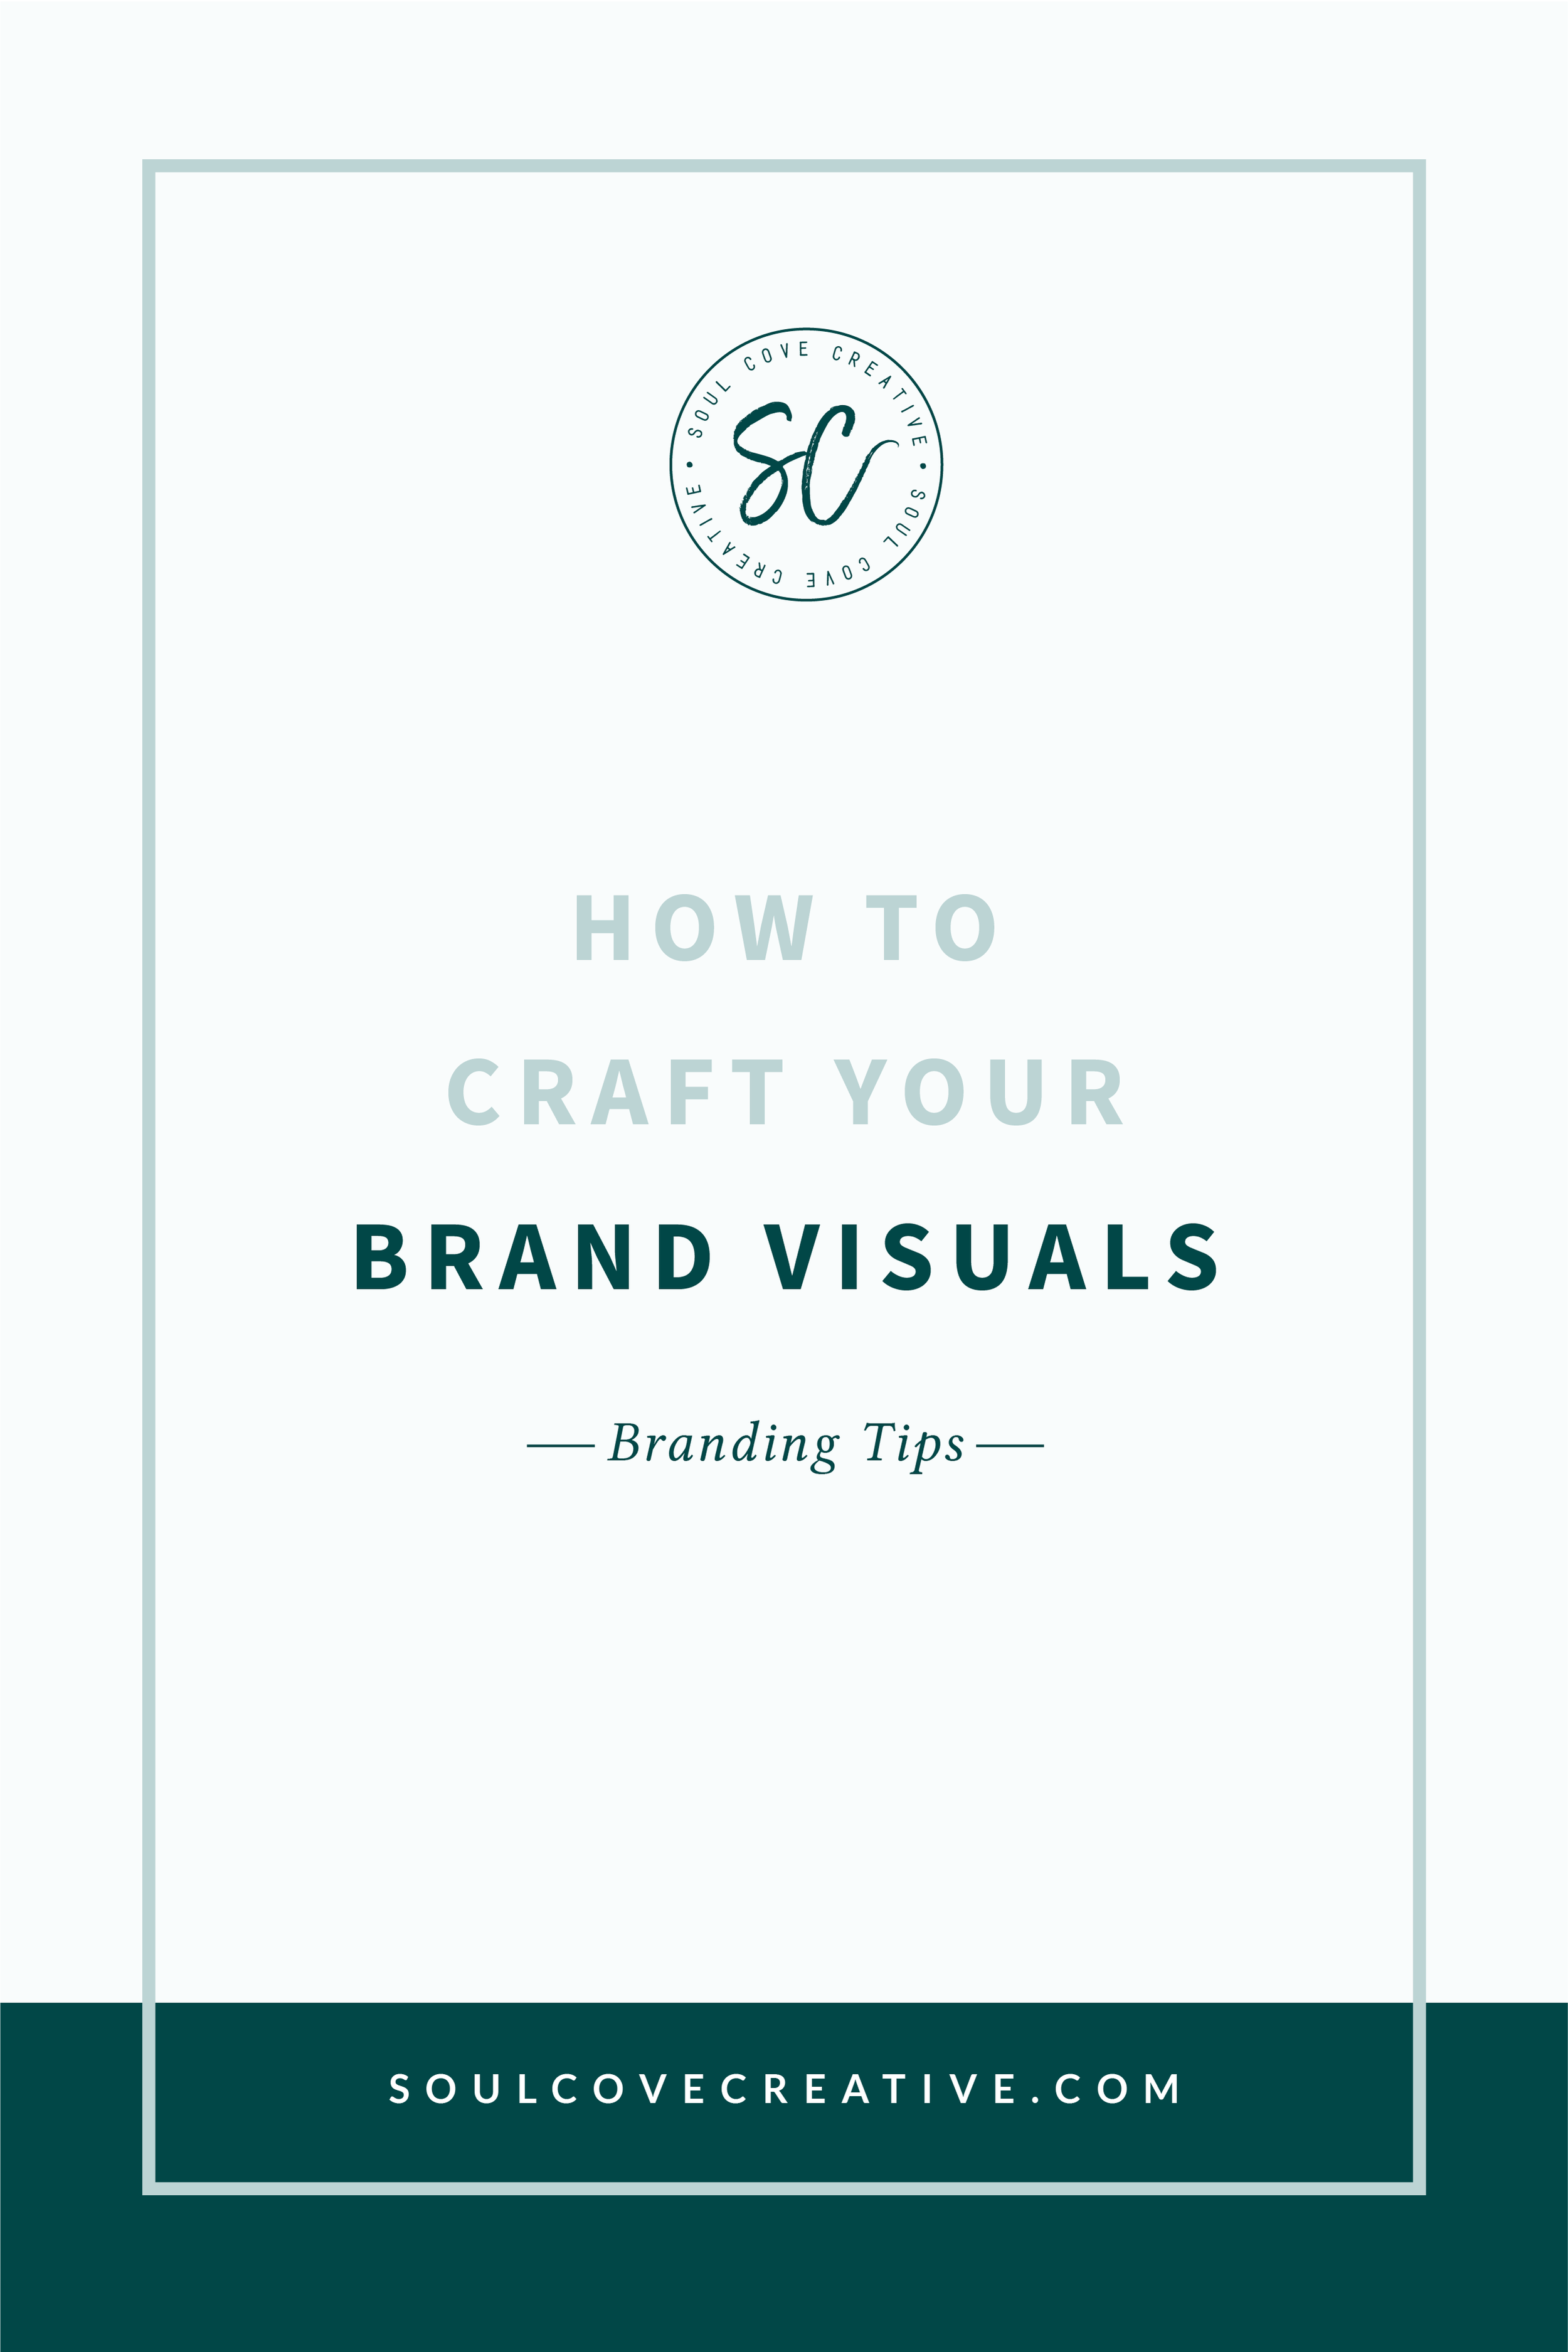 How to Craft your Brand Visuals